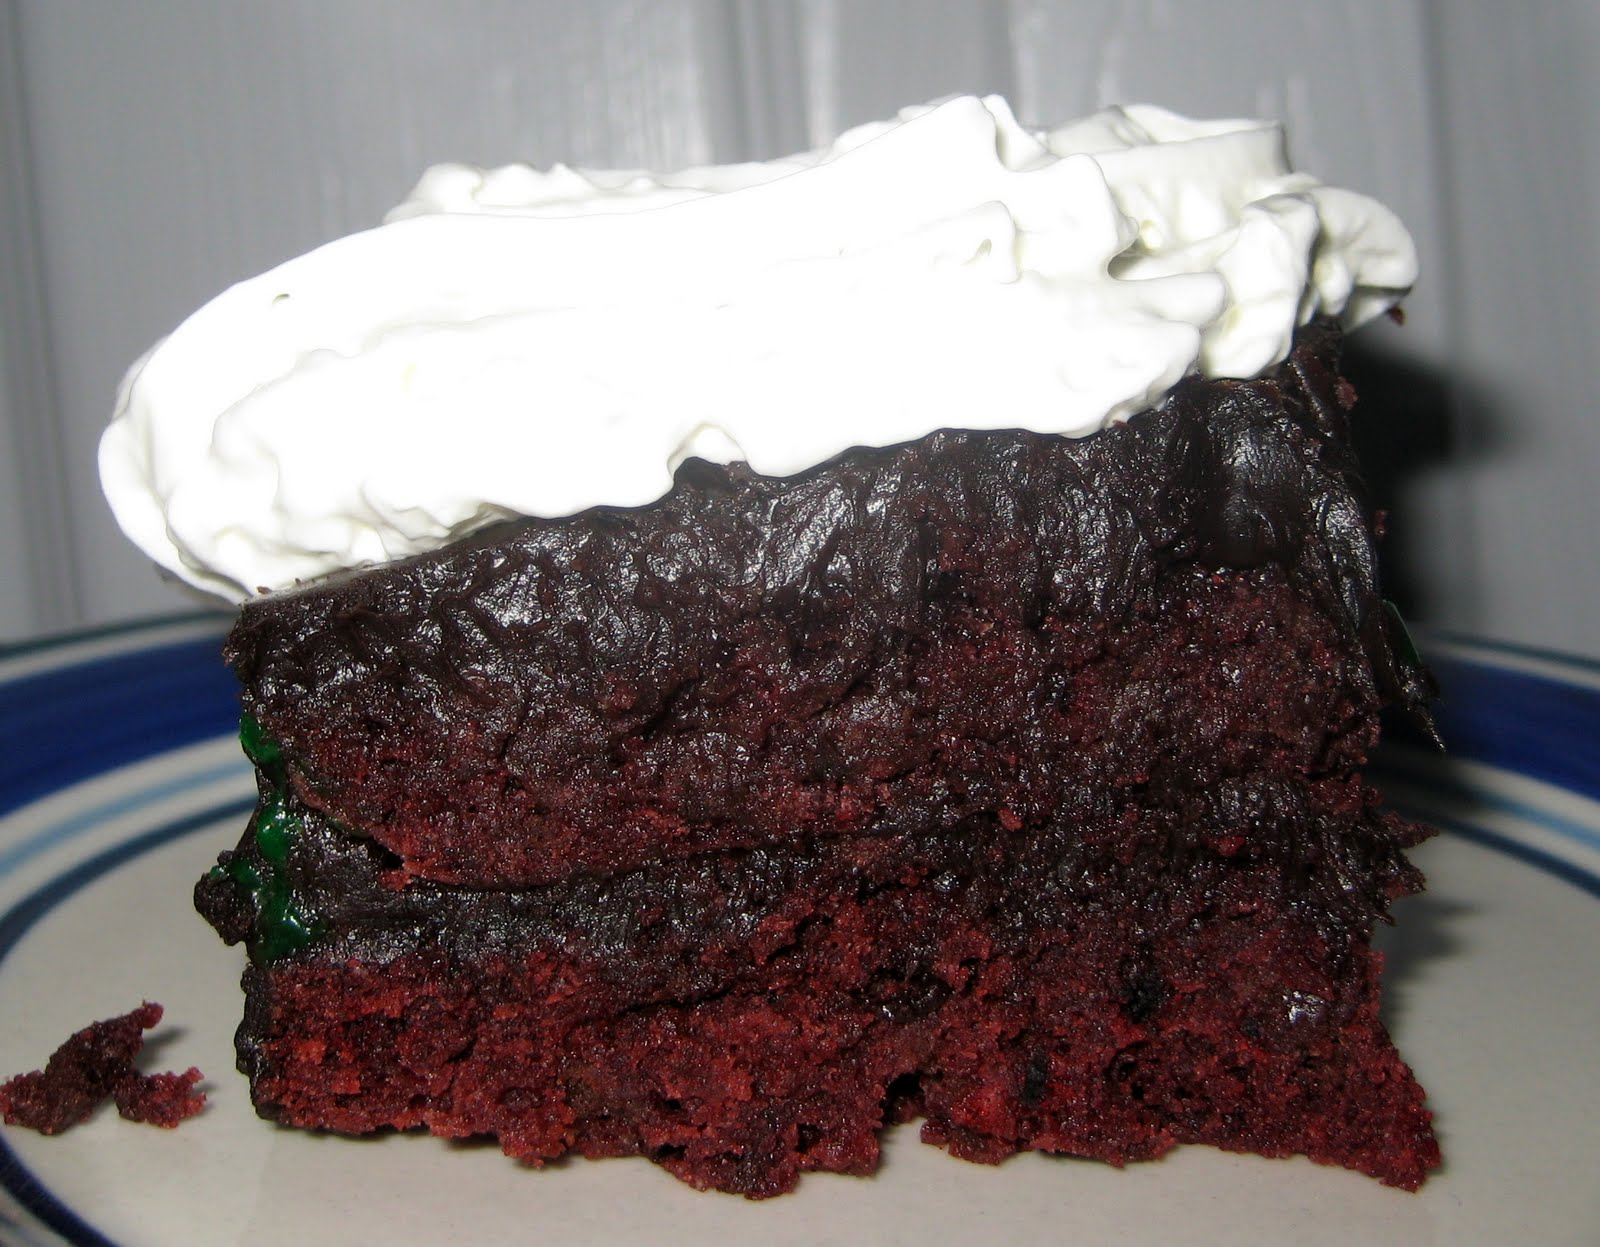 21st Century Urban Pioneers: Chocolate Chip Red Velvet Cake